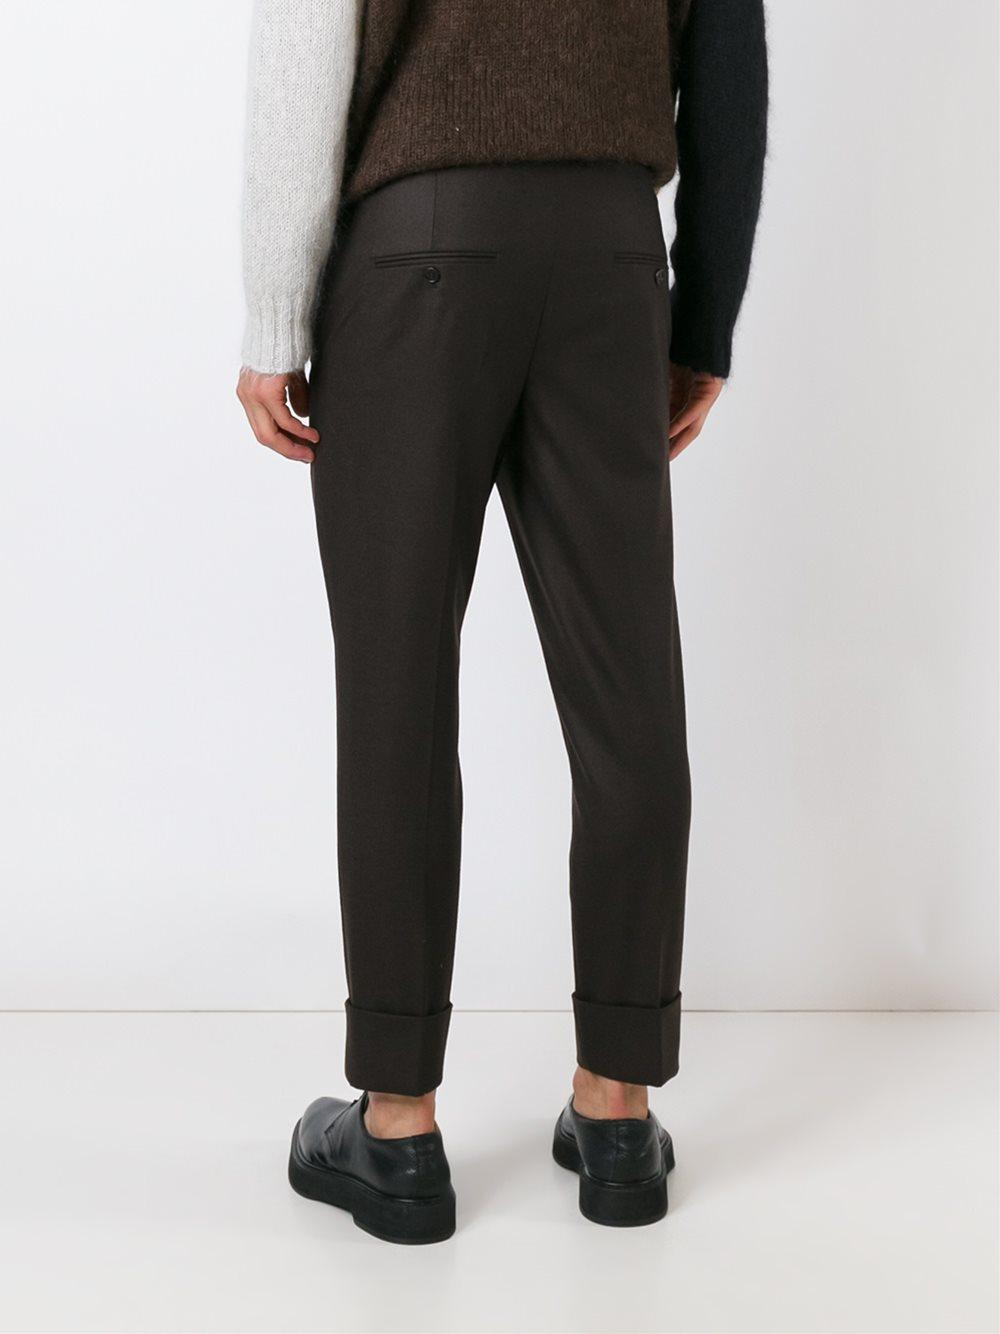 Neil Barrett Wool Cropped Trousers in Brown for Men